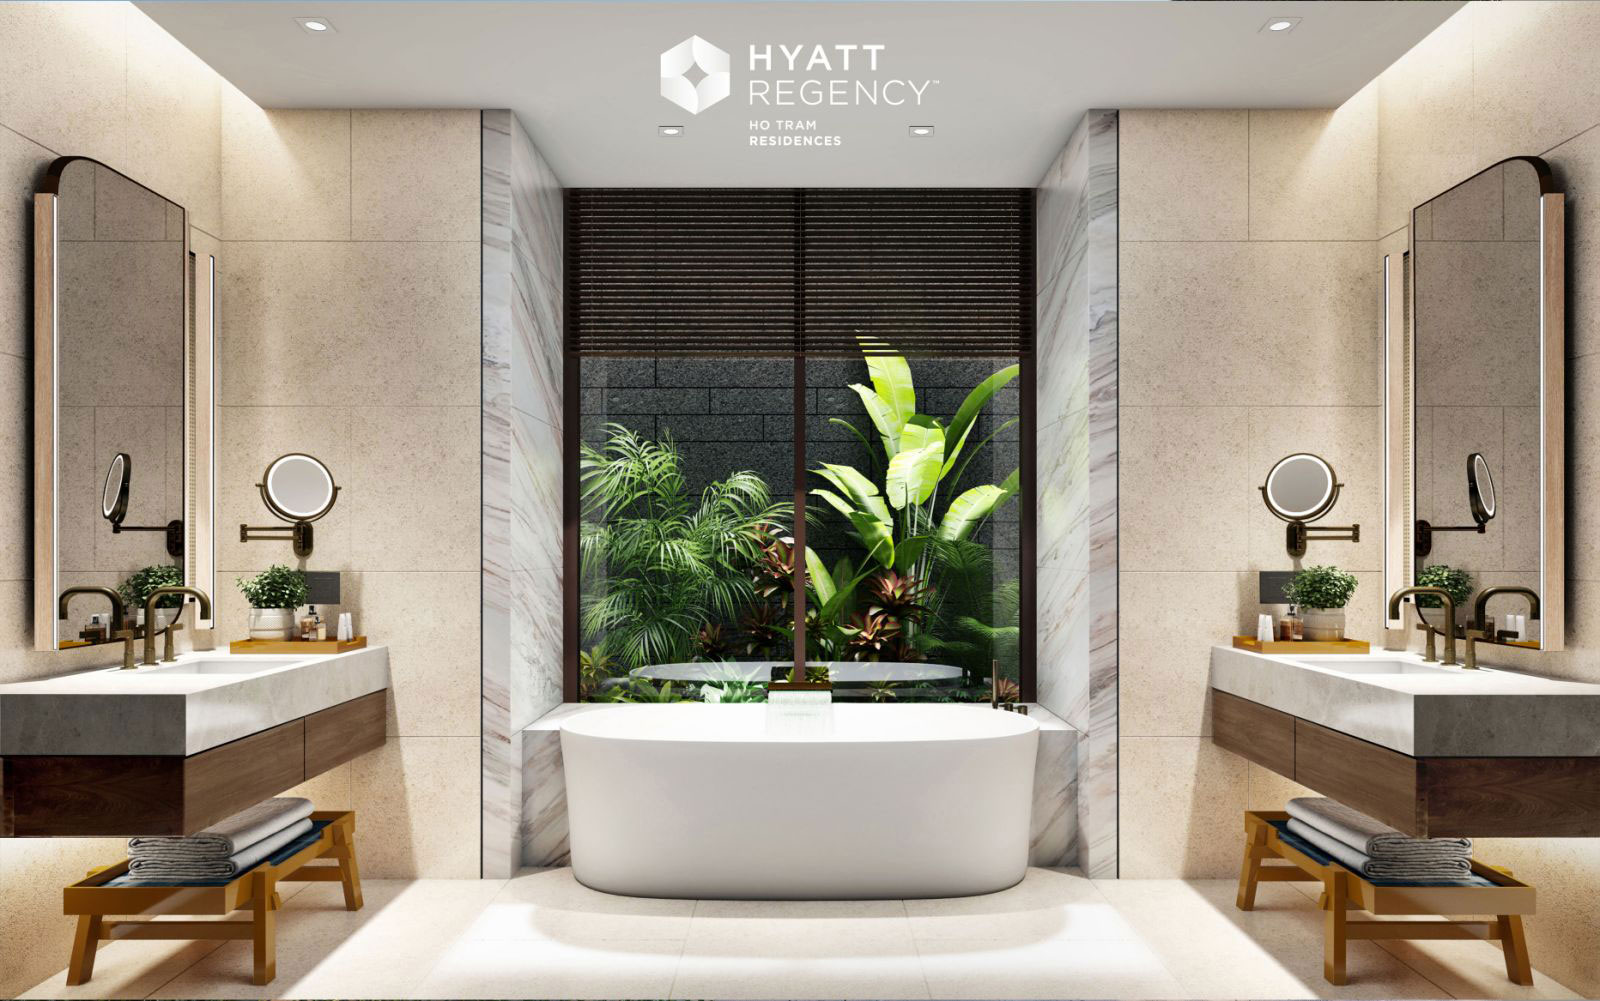 A bathroom with a large tub  Description automatically generated with low confidence